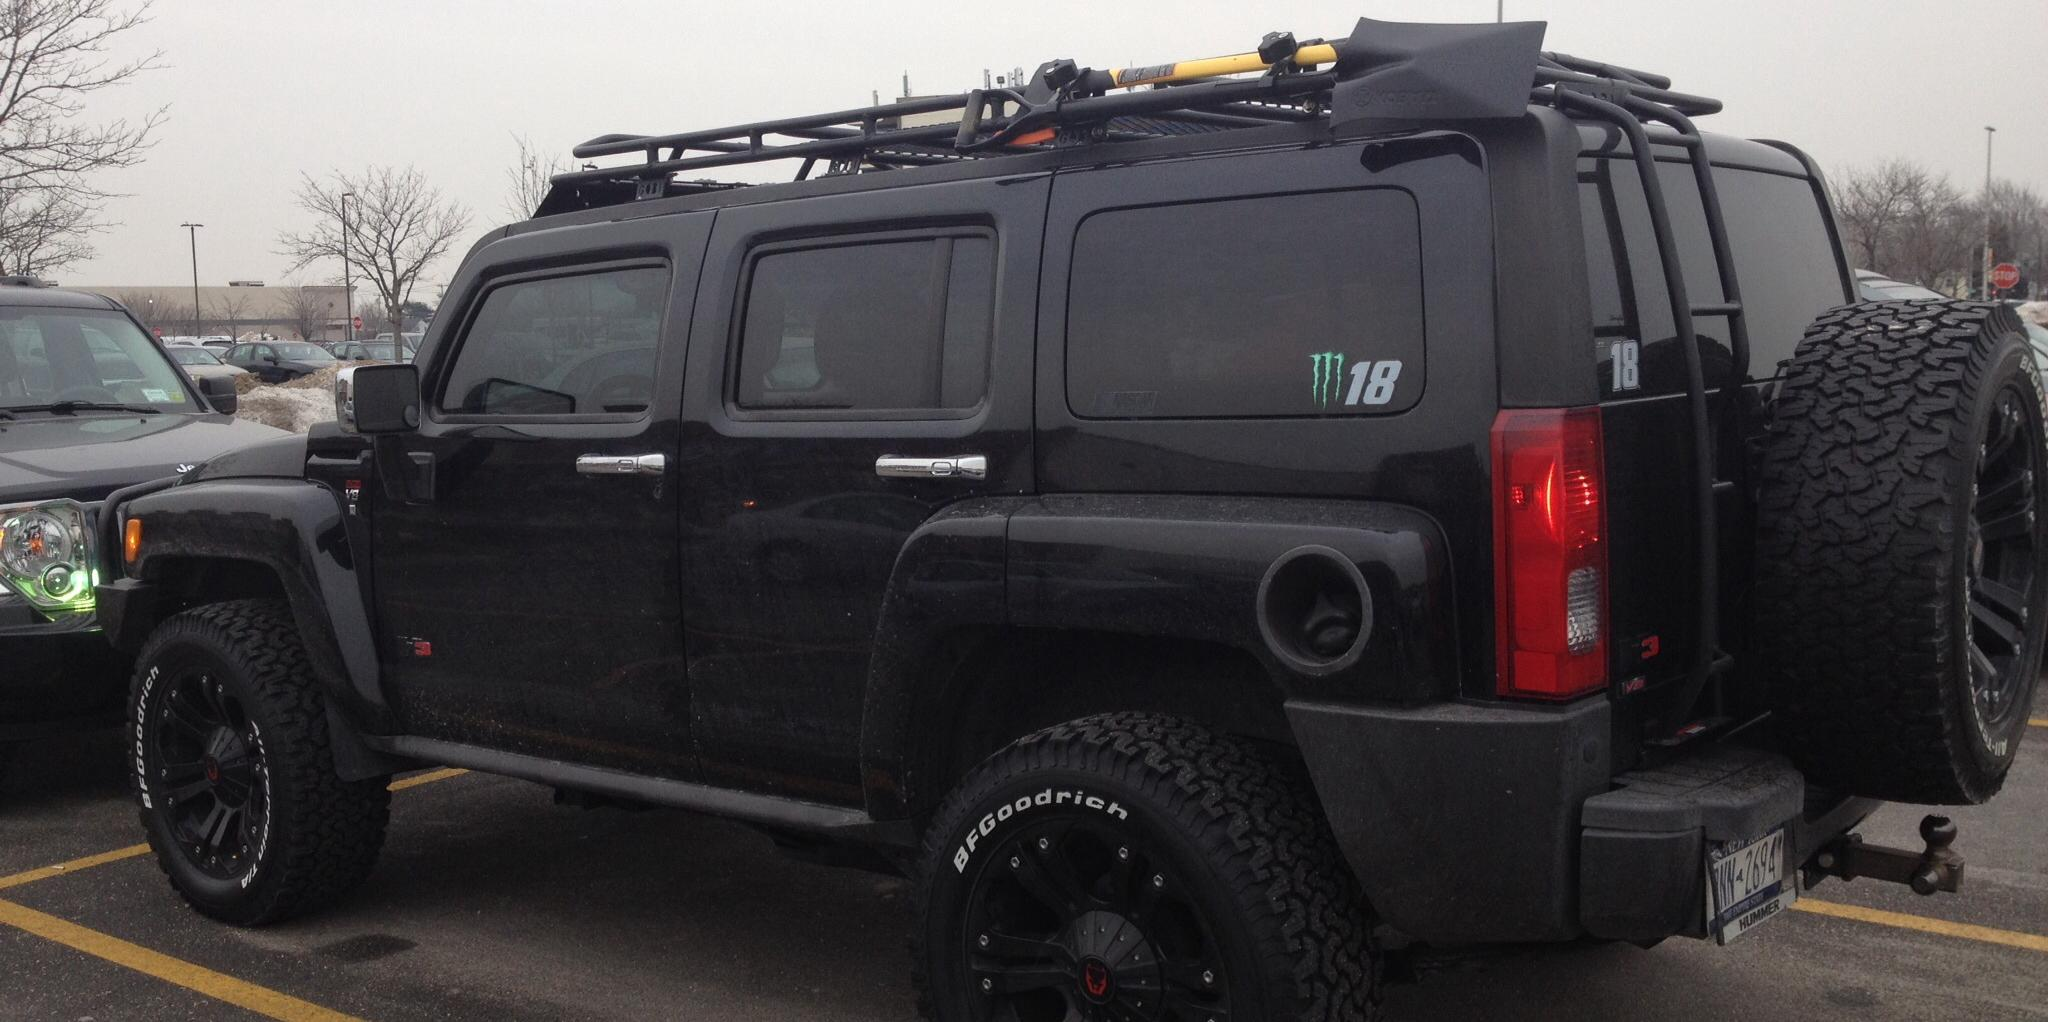 zeus2000 2008 Hummer H3Alpha Specs s Modification Info at